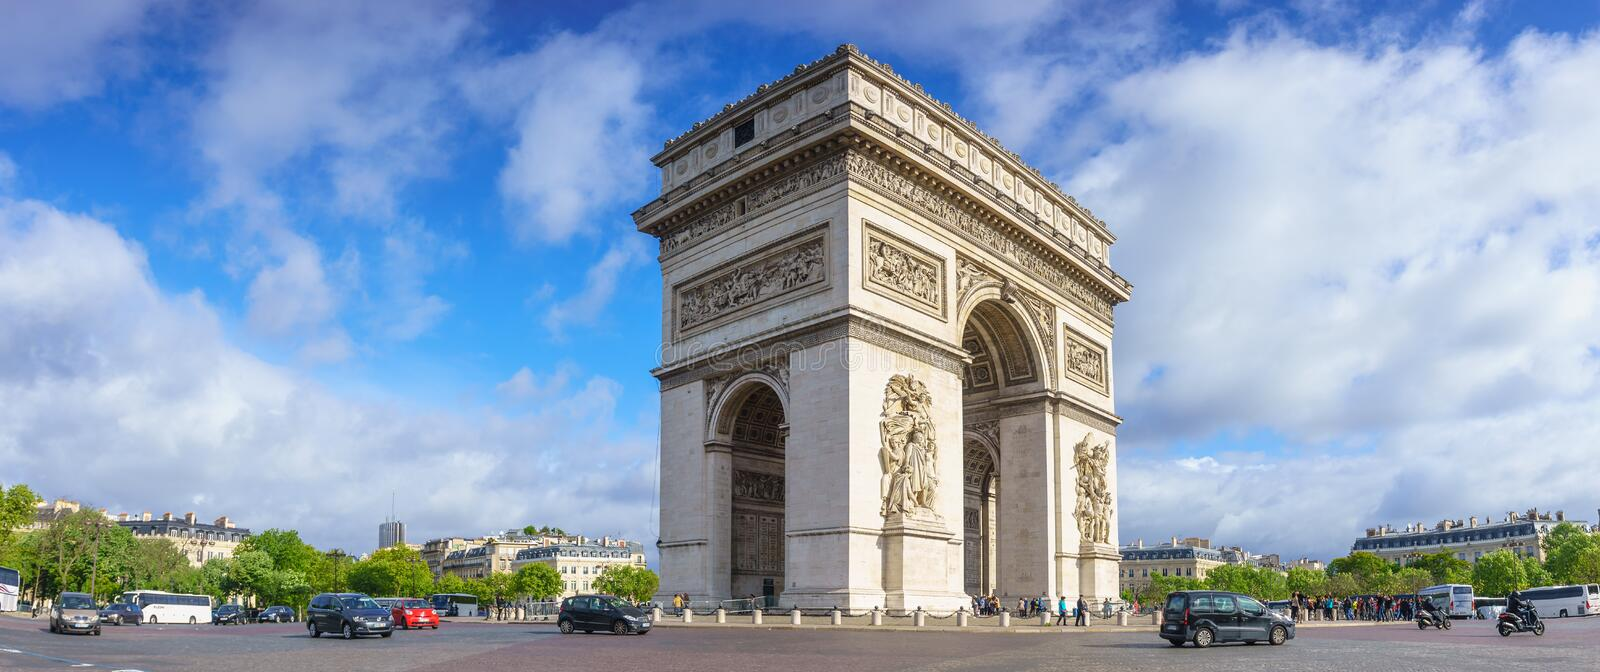 Paris, France - May 1, 2017: Panorama morning view of Arc de Tri royalty free stock photography